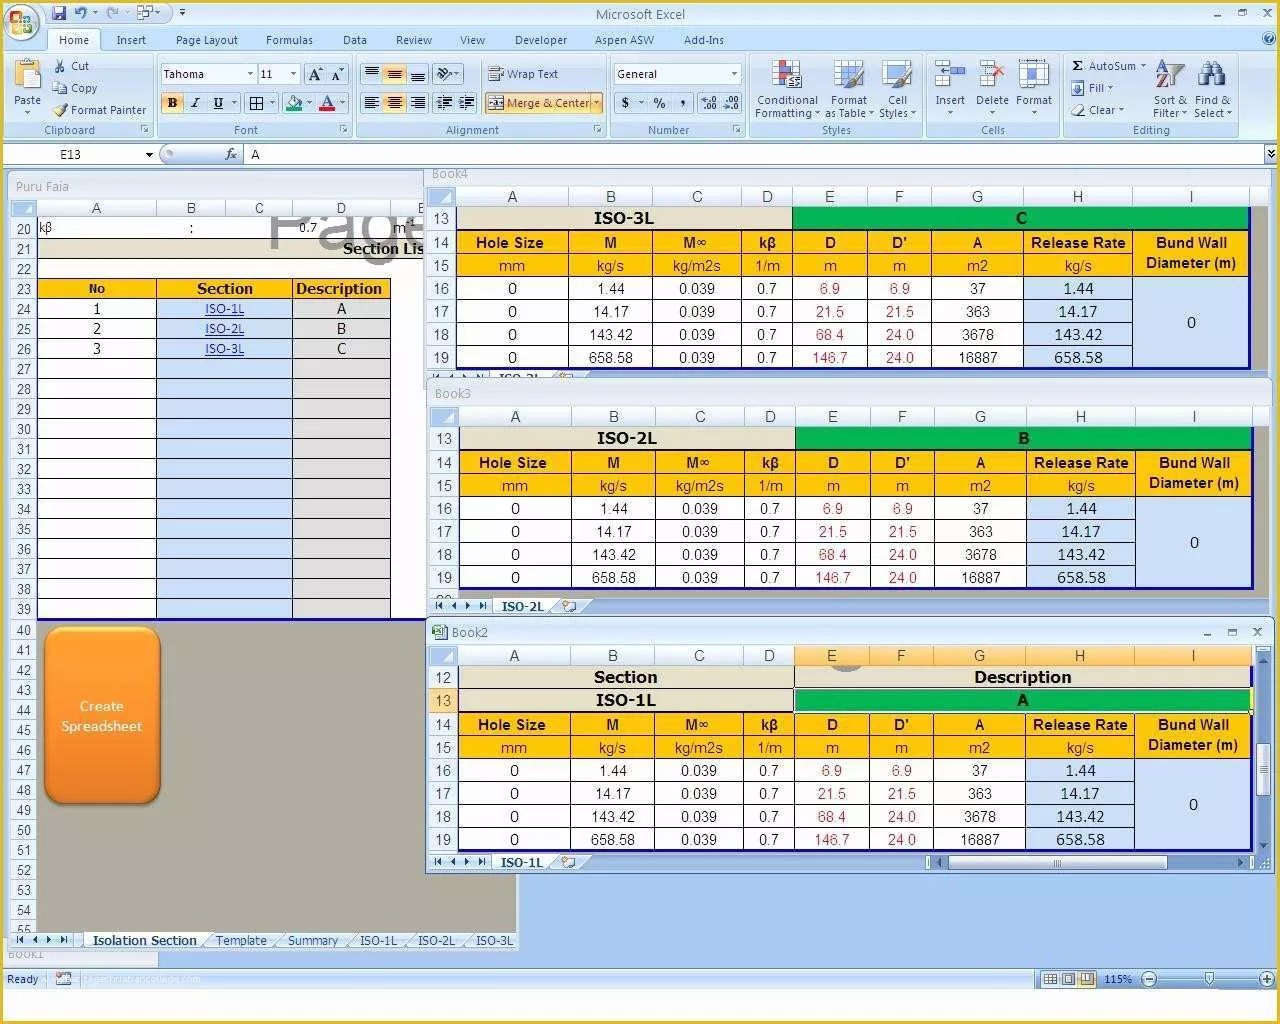 Excel Vba Templates Free Download Of Dynamic Userform